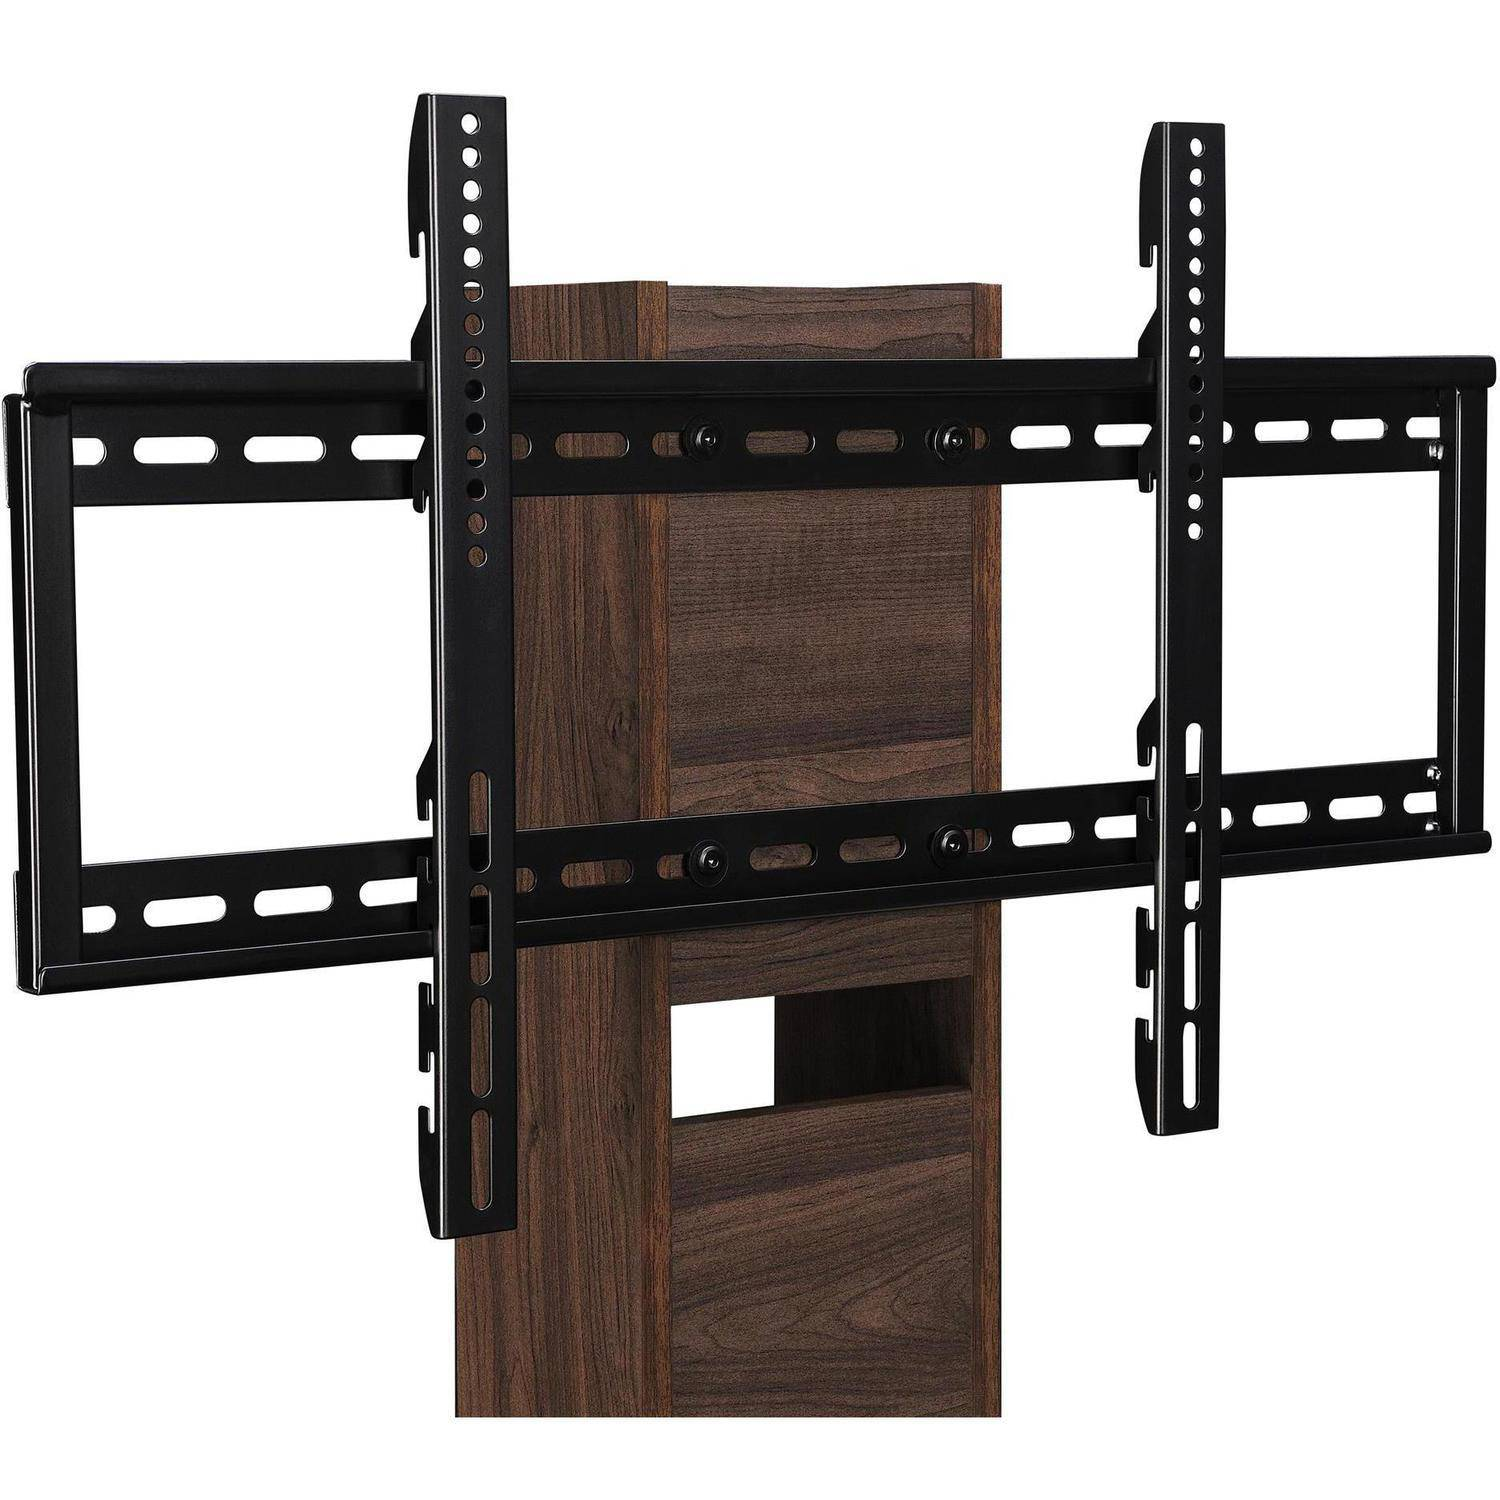 ameriwood home galaxy tv stand with mount for tvs up to 50 black walmart com